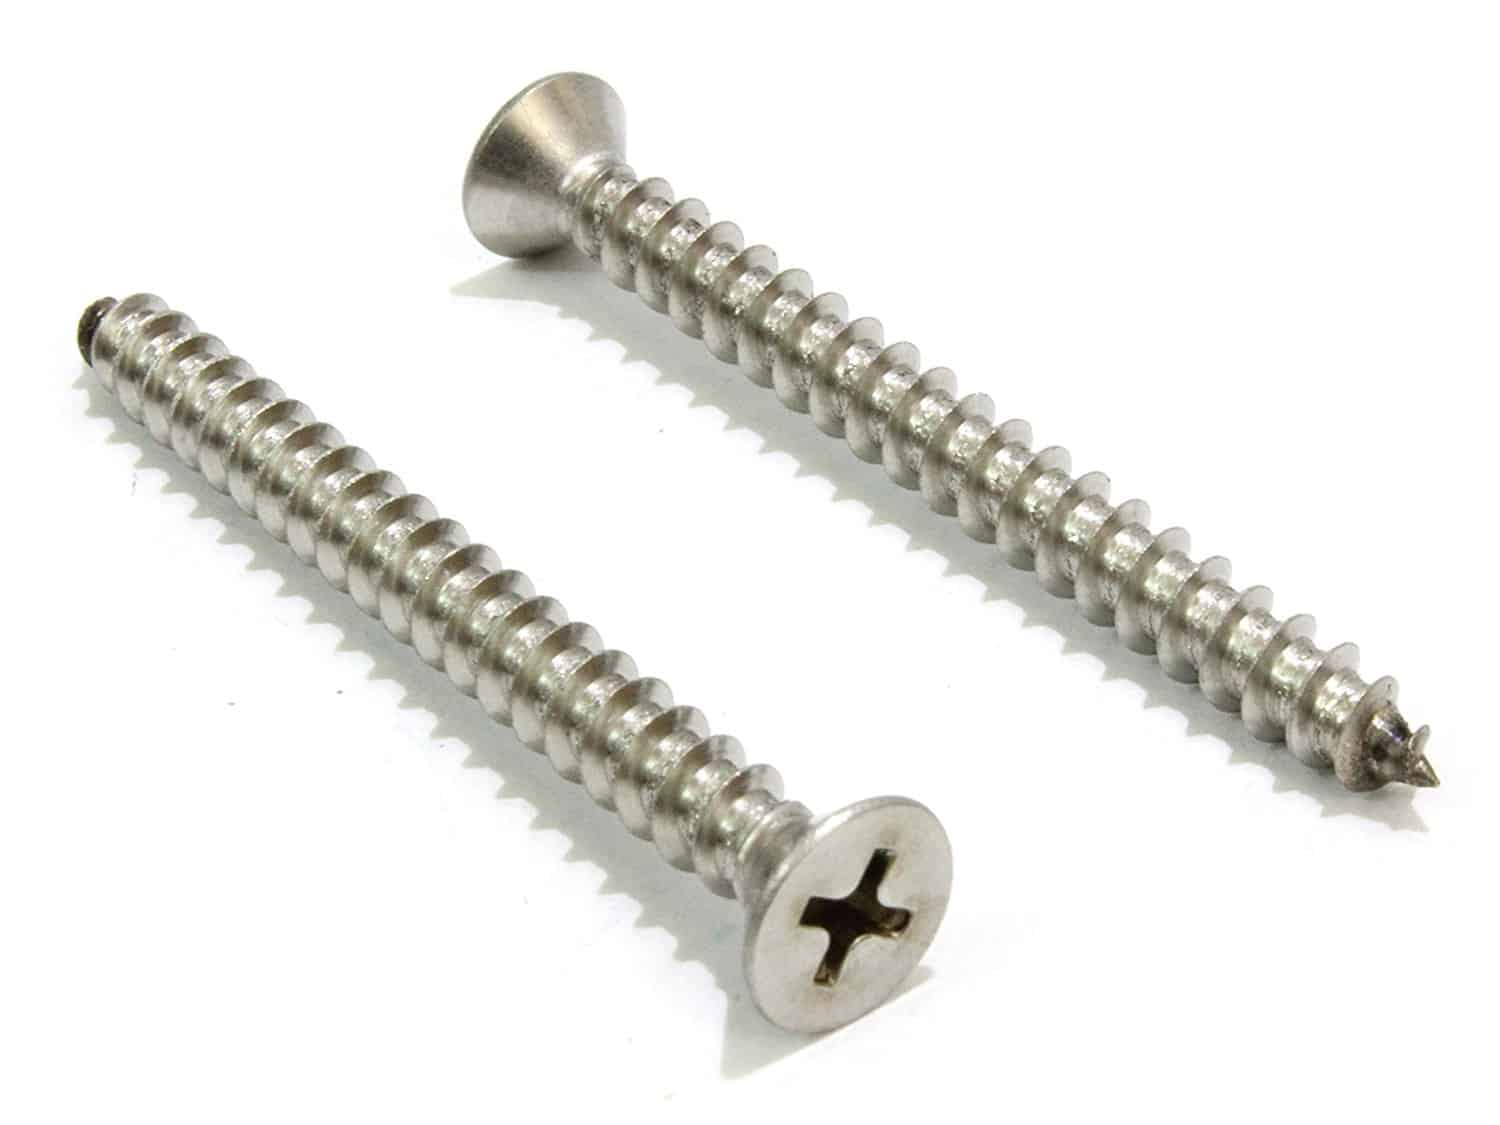 Flat head stainless Phillips screw perfect for wood.